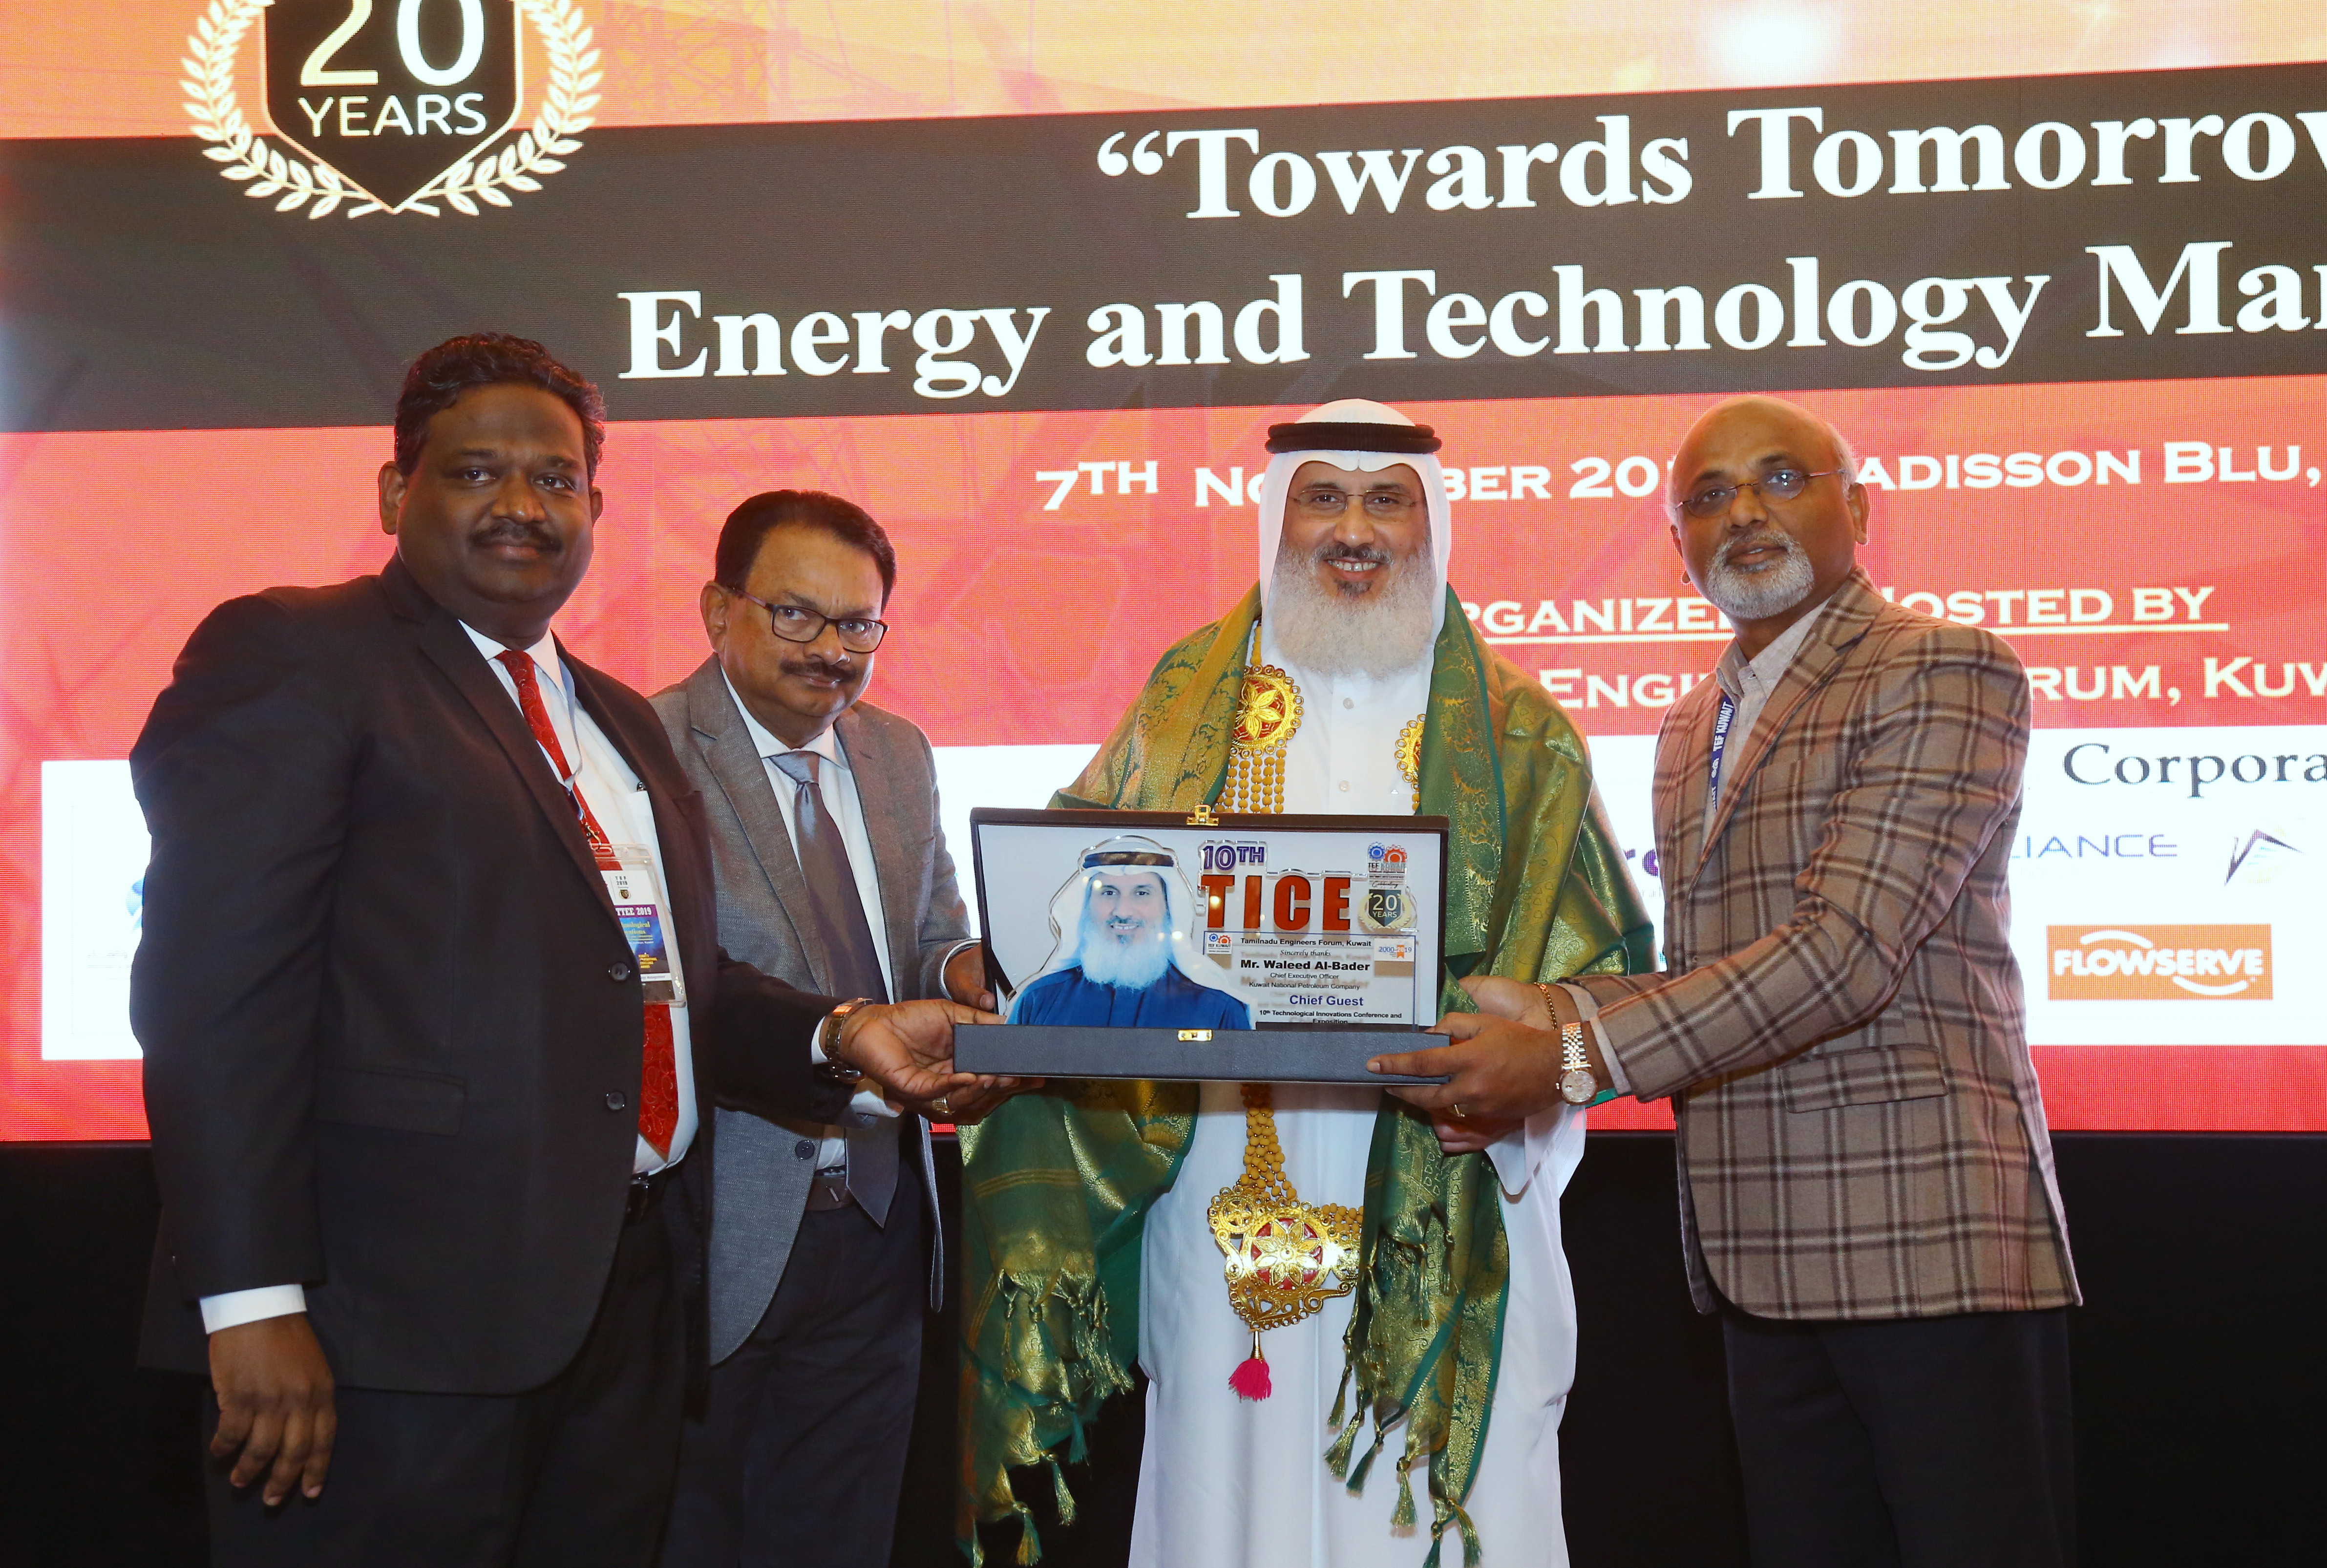 """1 - TEF organized the 10th Technological Innovations Conference and Exposition on 7th November 2019 at Radisson Blu Hotel, Kuwait with a Theme """"Towards Tomorrow: Energy & Technology Management"""""""